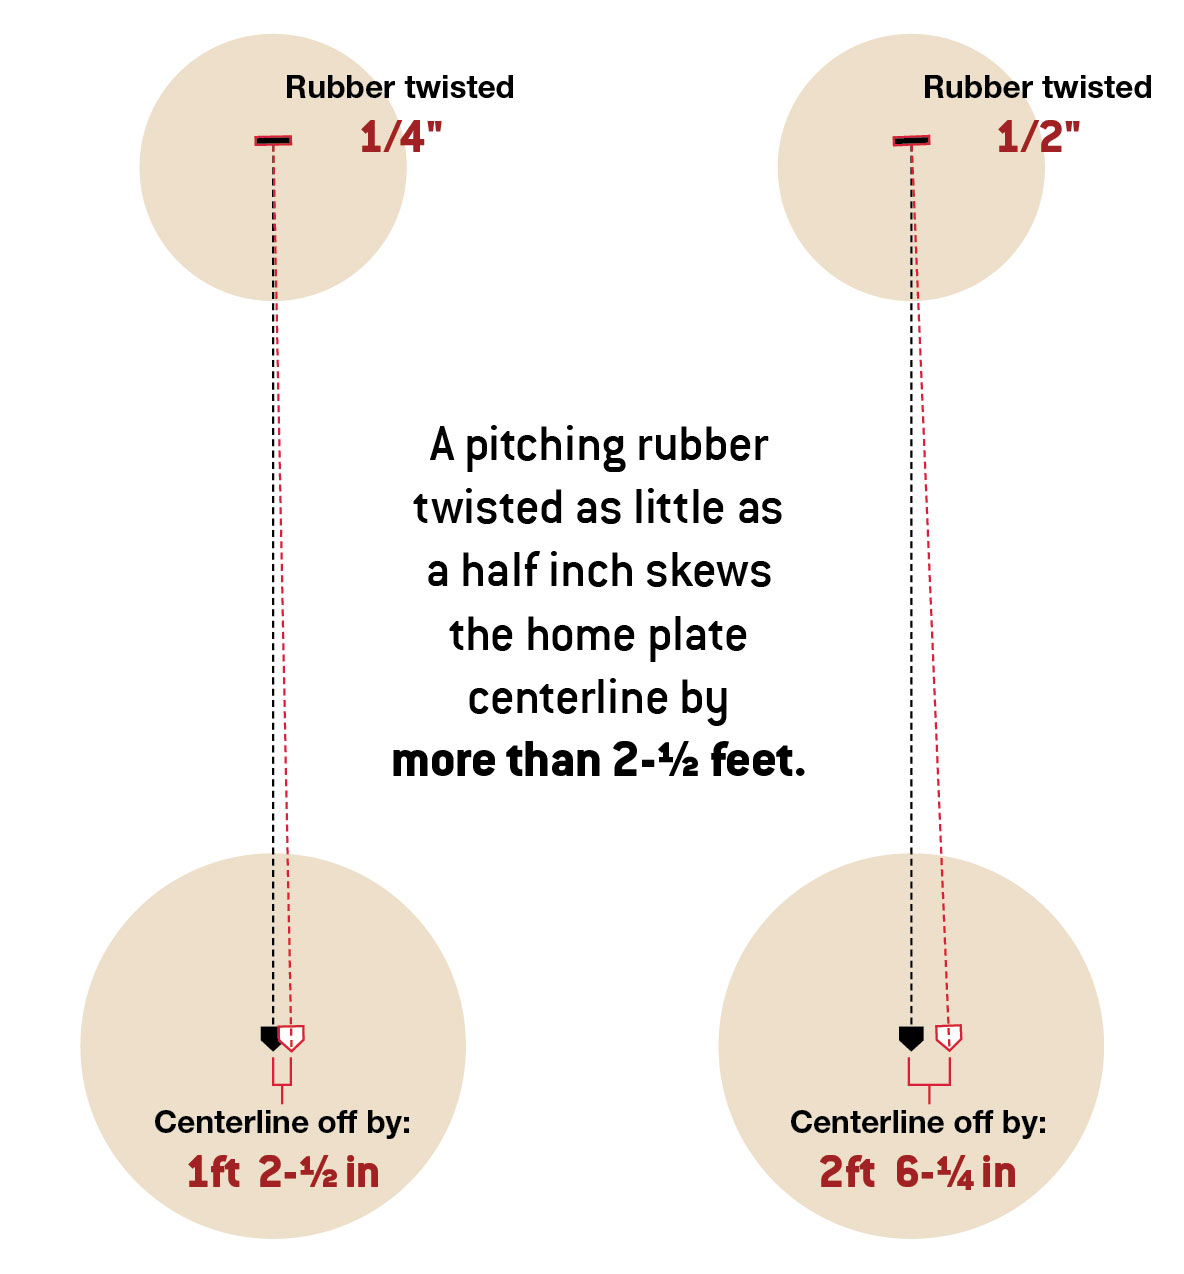 Setting The Pitching Rubber Beacon Athletics Diagram 1 Black Is In Check 2 Double A Twisted As Little Half Inch Skews Home Plate